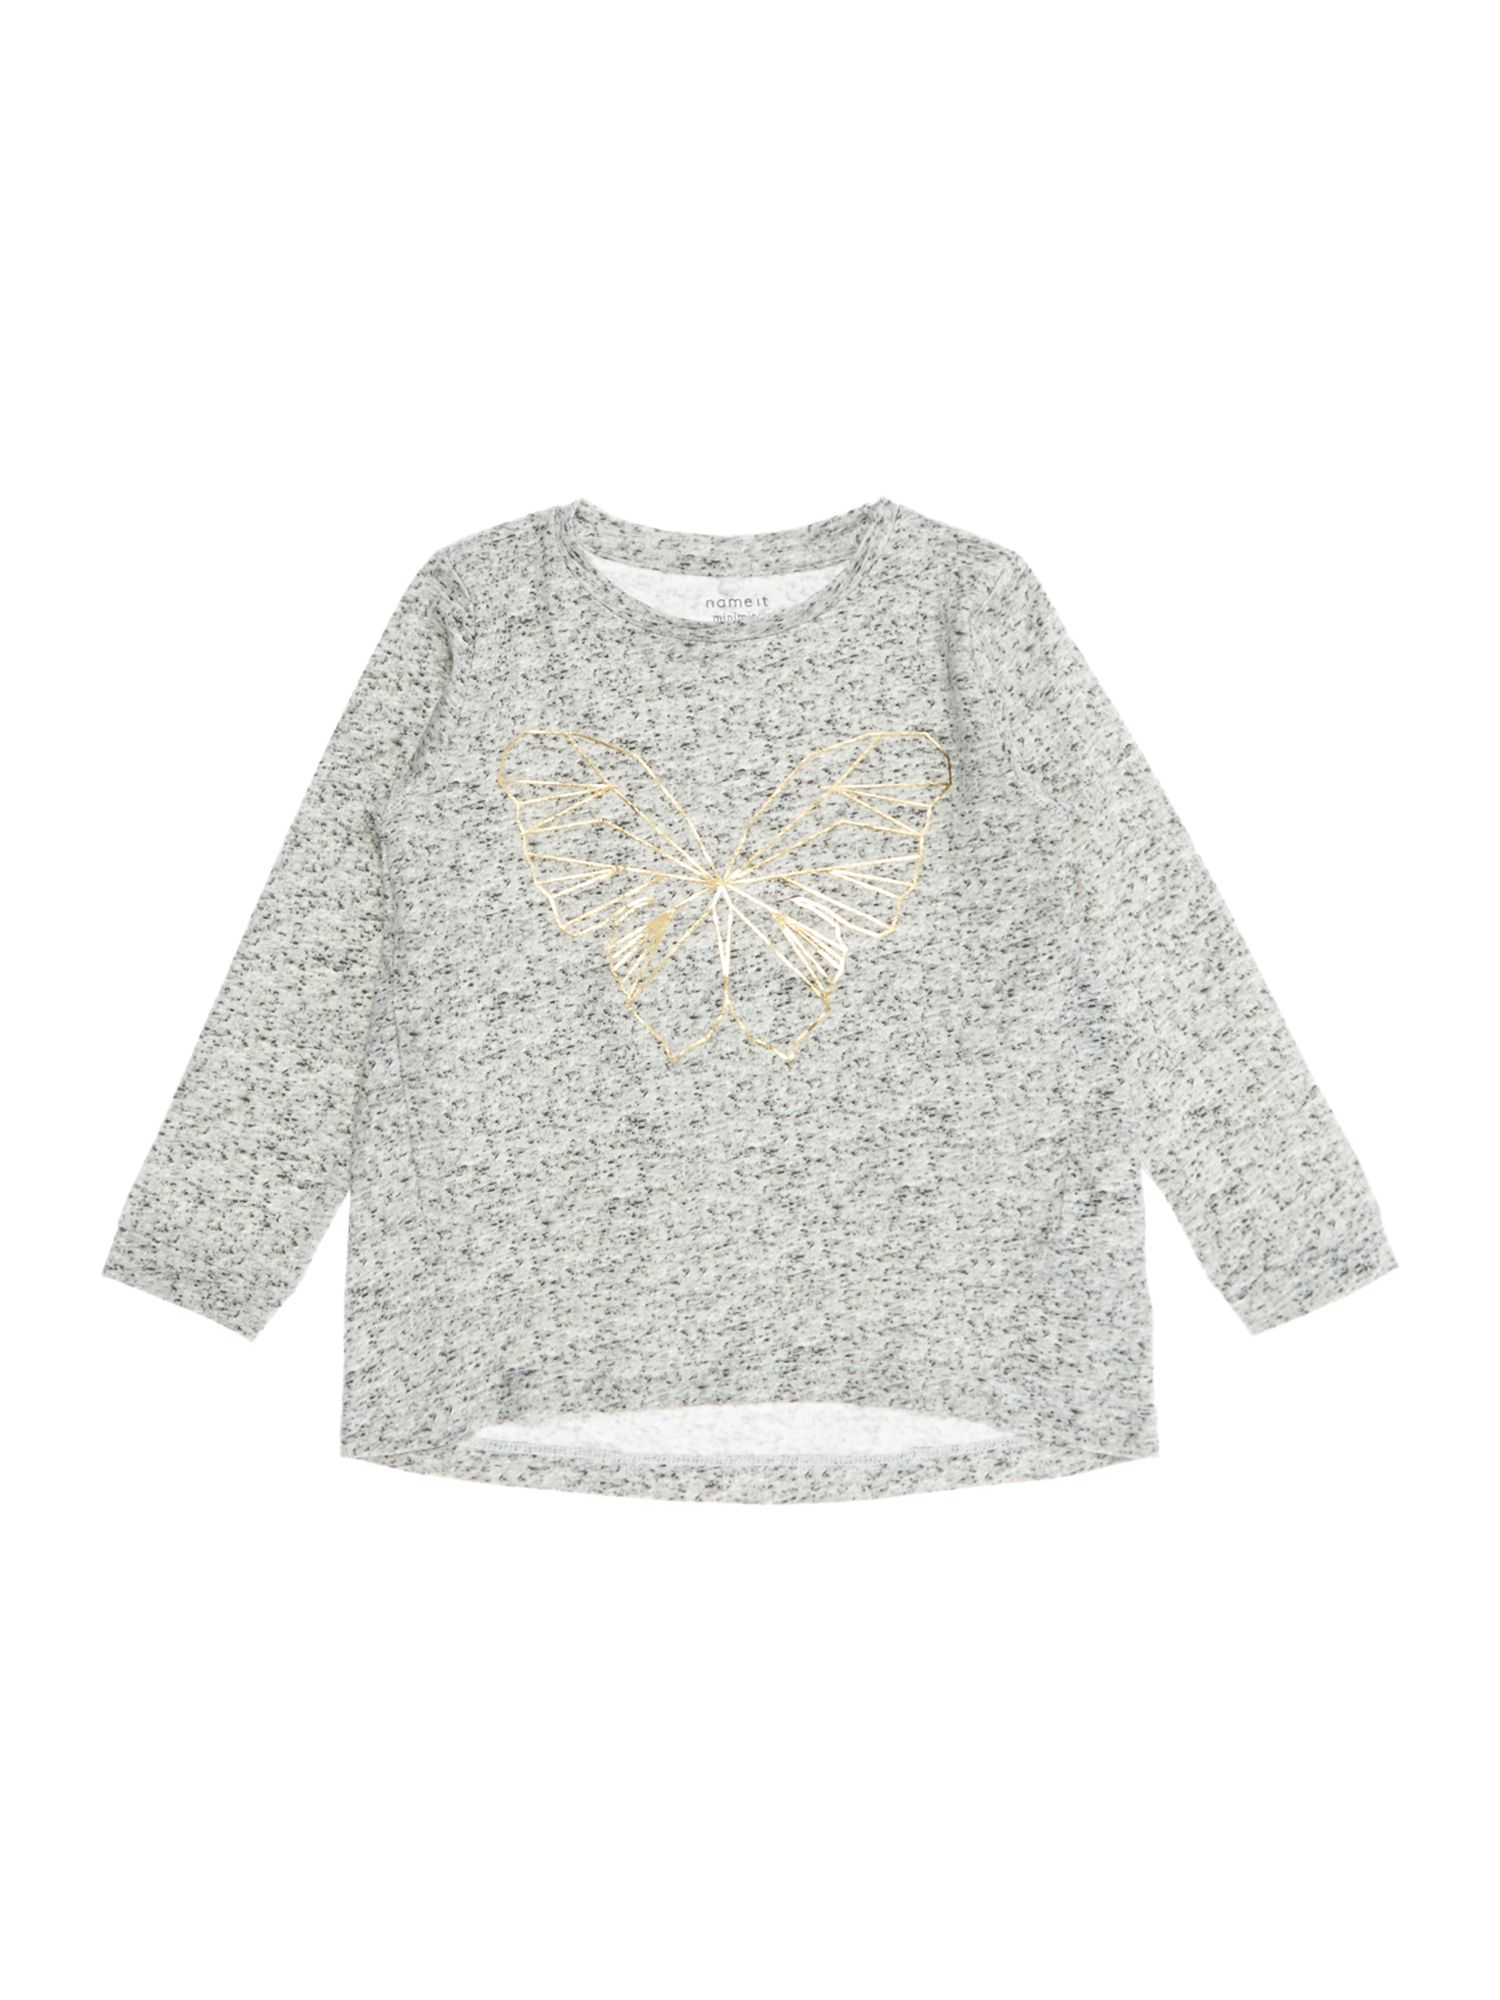 Name it name it Girls Gold Butterfly Long Sleeve T-shirt, Grey